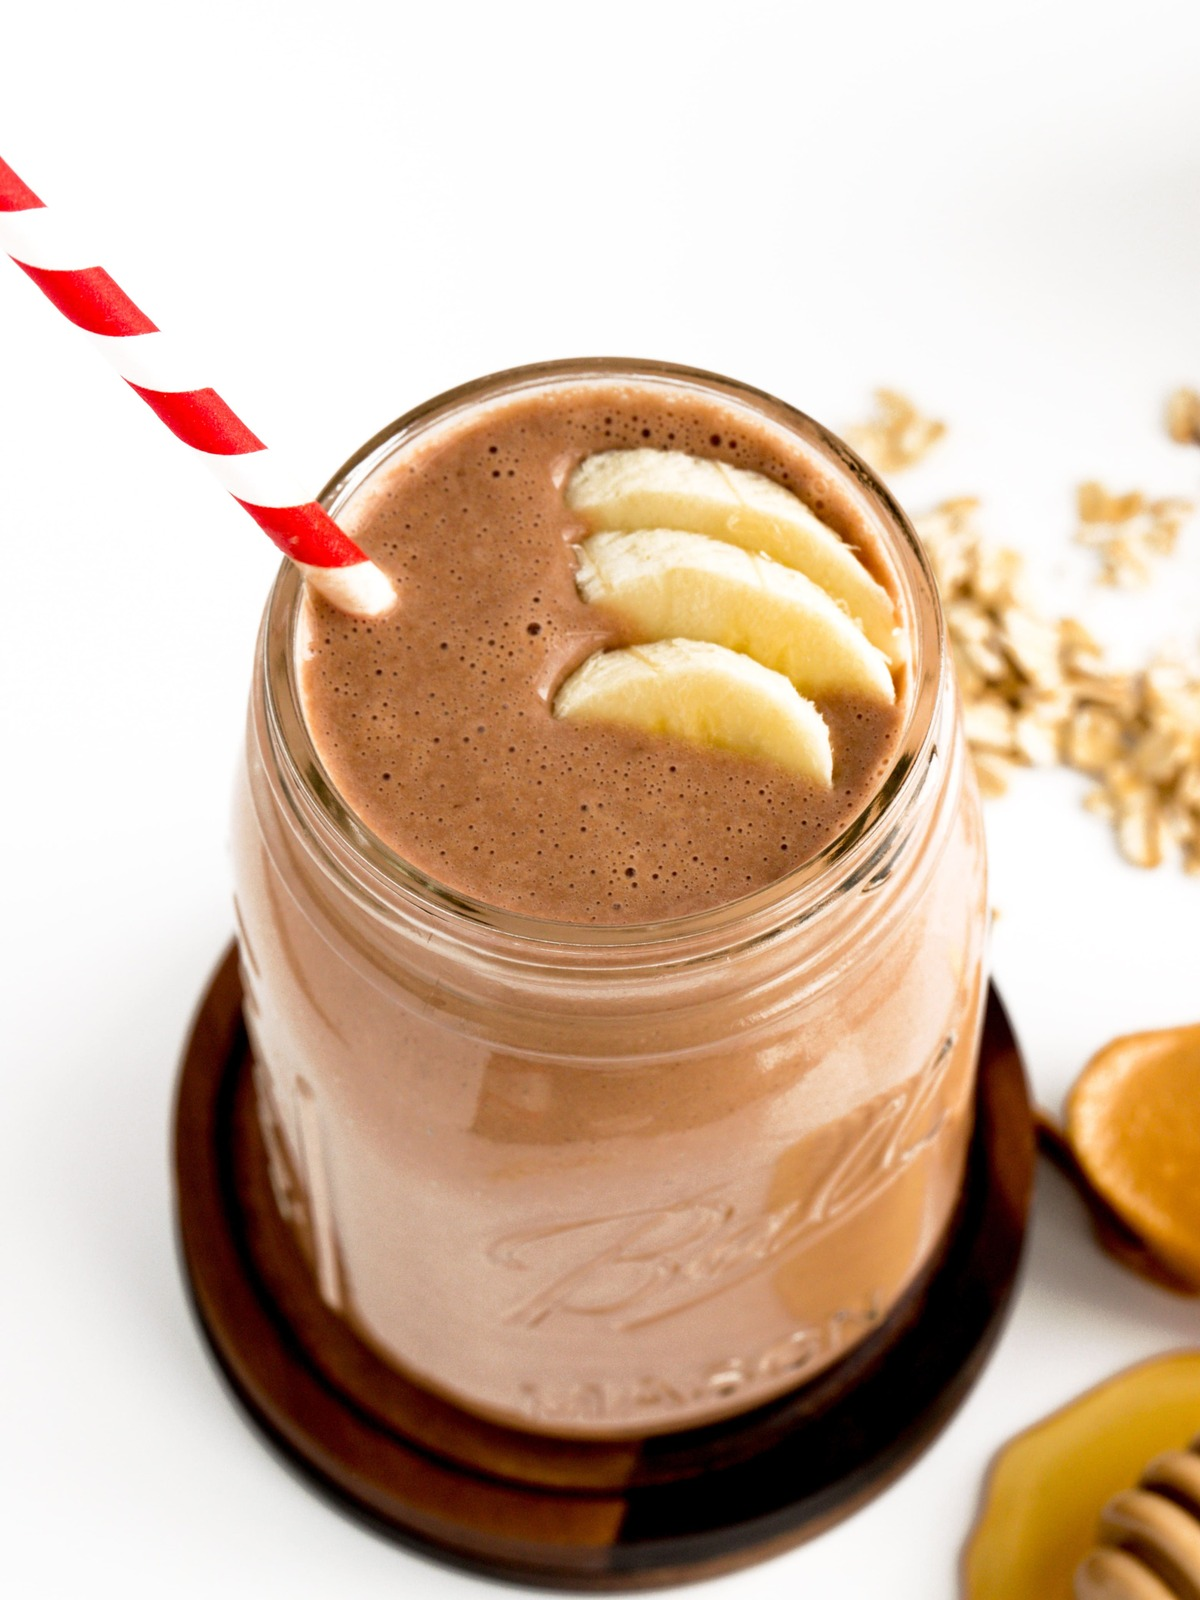 chocolate peanut butter oat smoothie with bananas and red and white straw